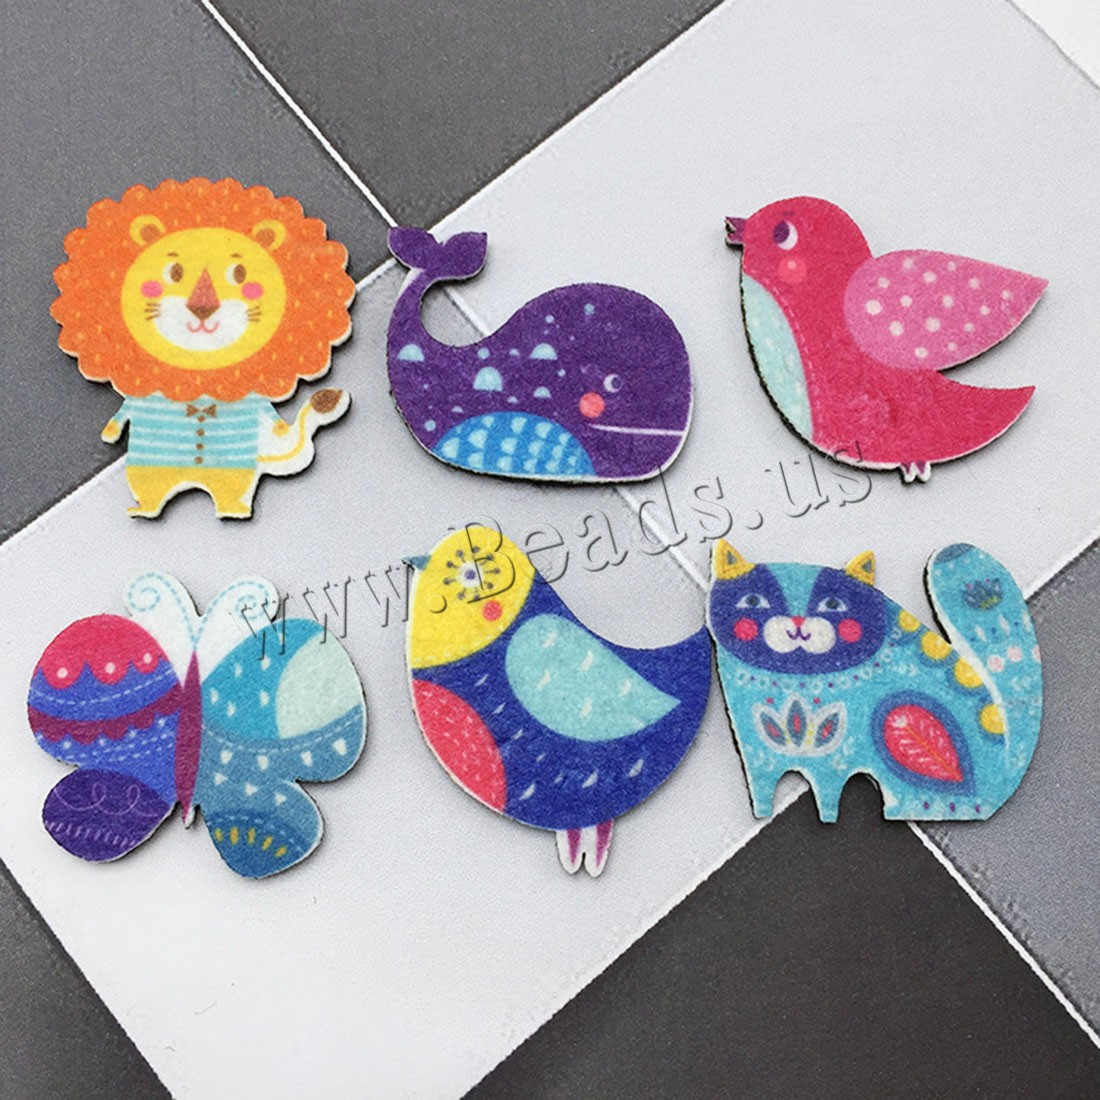 Buy Hair Accessories DIY Findings Non-woven Fabrics children & different styles choice 5 Sold Lot